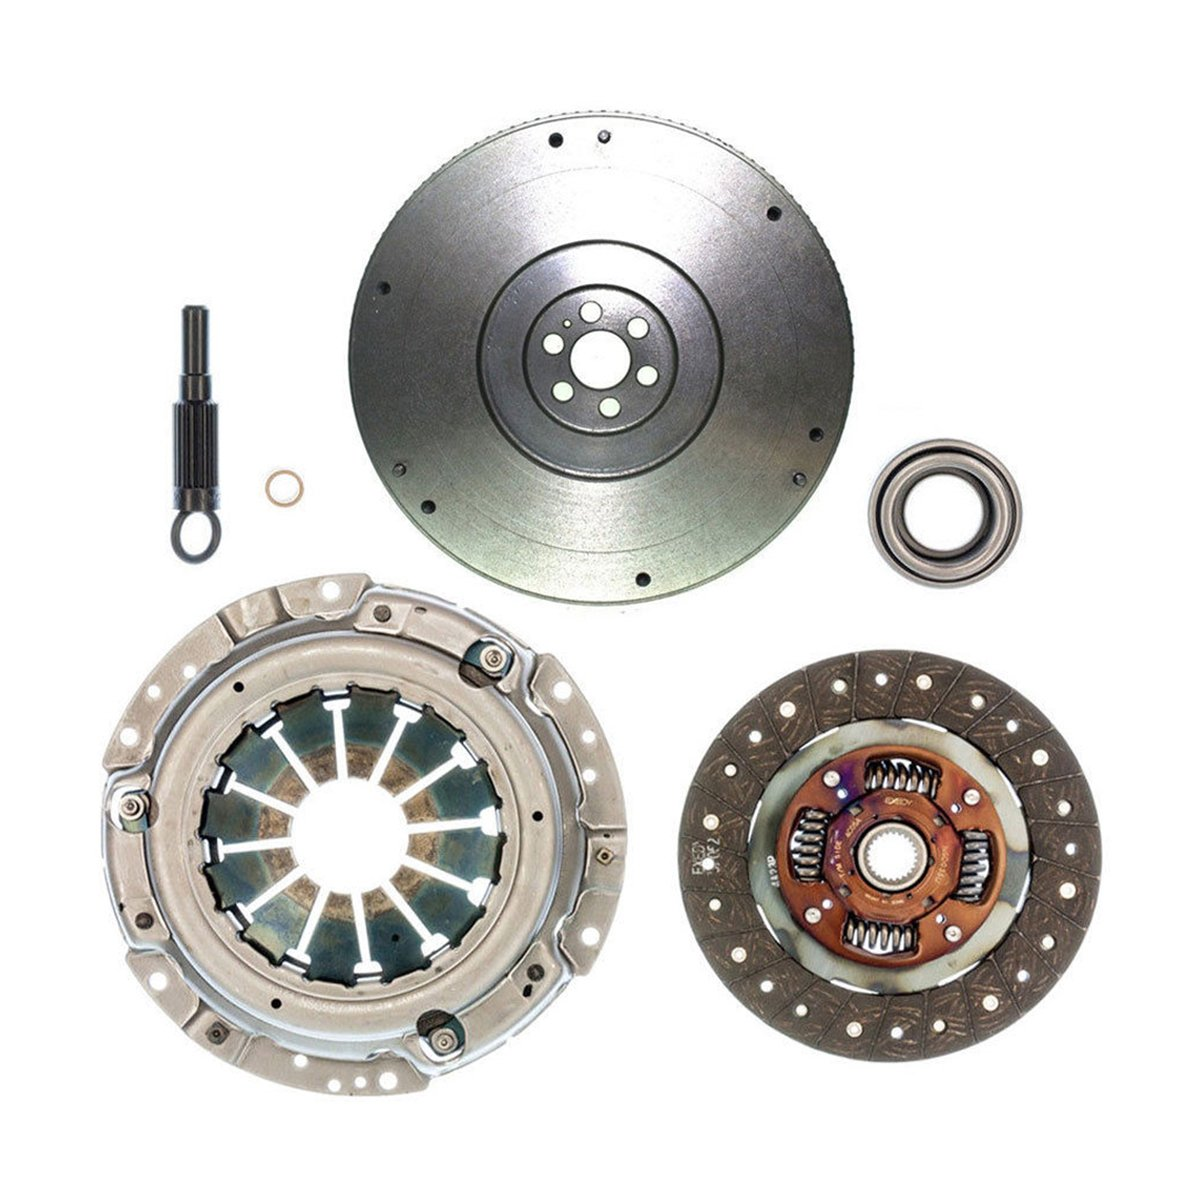 EF STAGE 2 HD SPORT CLUTCH KIT FOR 94-01 ACURA INTEGRA RS LS GS GS-R TYPE-R B18 B18C